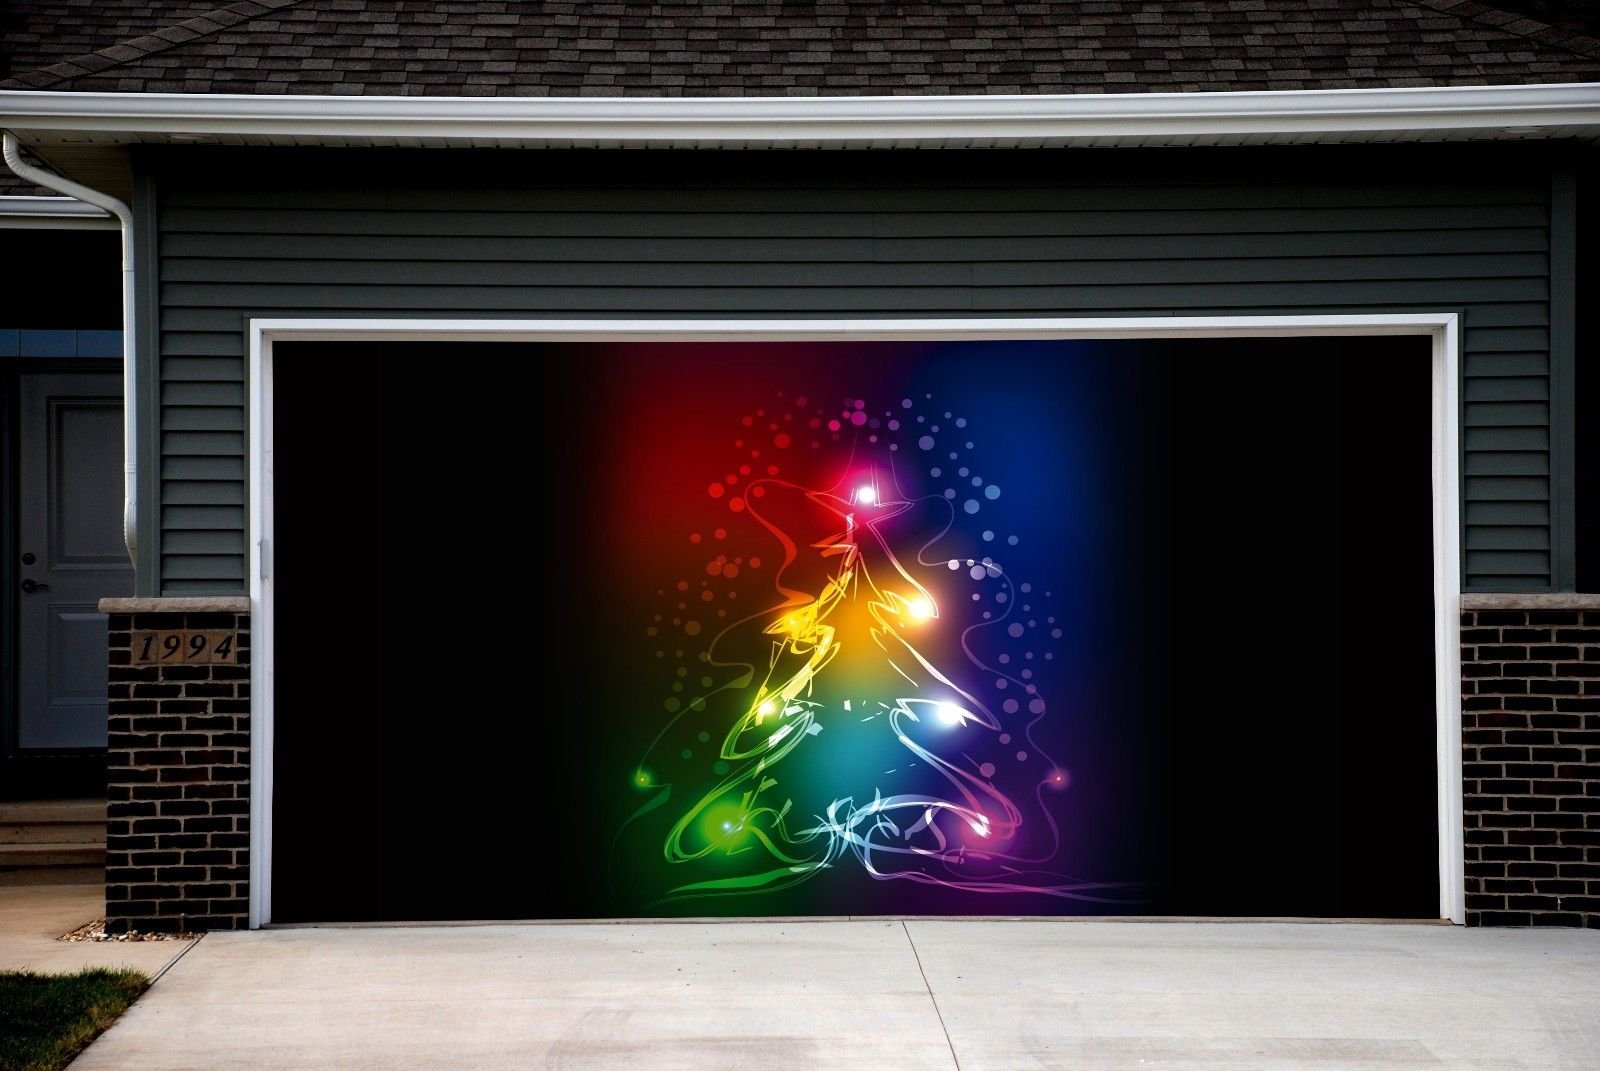 Full Color Christmas Tree Garage Door Covers Banners Outdoor Holiday Merry Christmas Decorations Billboard for 2 Car Garage Door House Art Murals size 82x188 inches DAV53